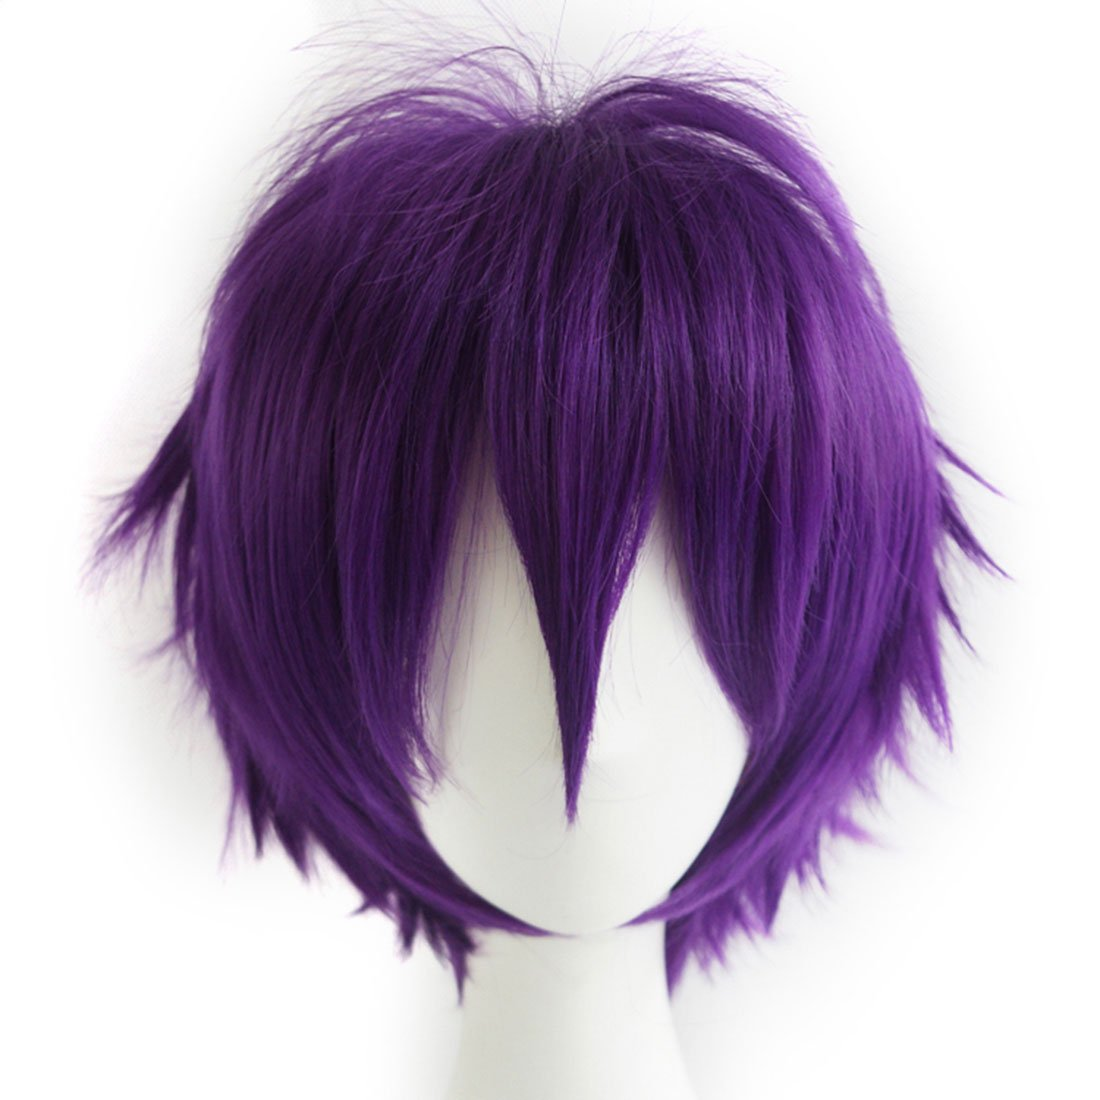 Alacos Purple Short Layered Anime Cosplay Wig Teens Men Boy Unisex Costumes Apparel Hair Wig +Cap